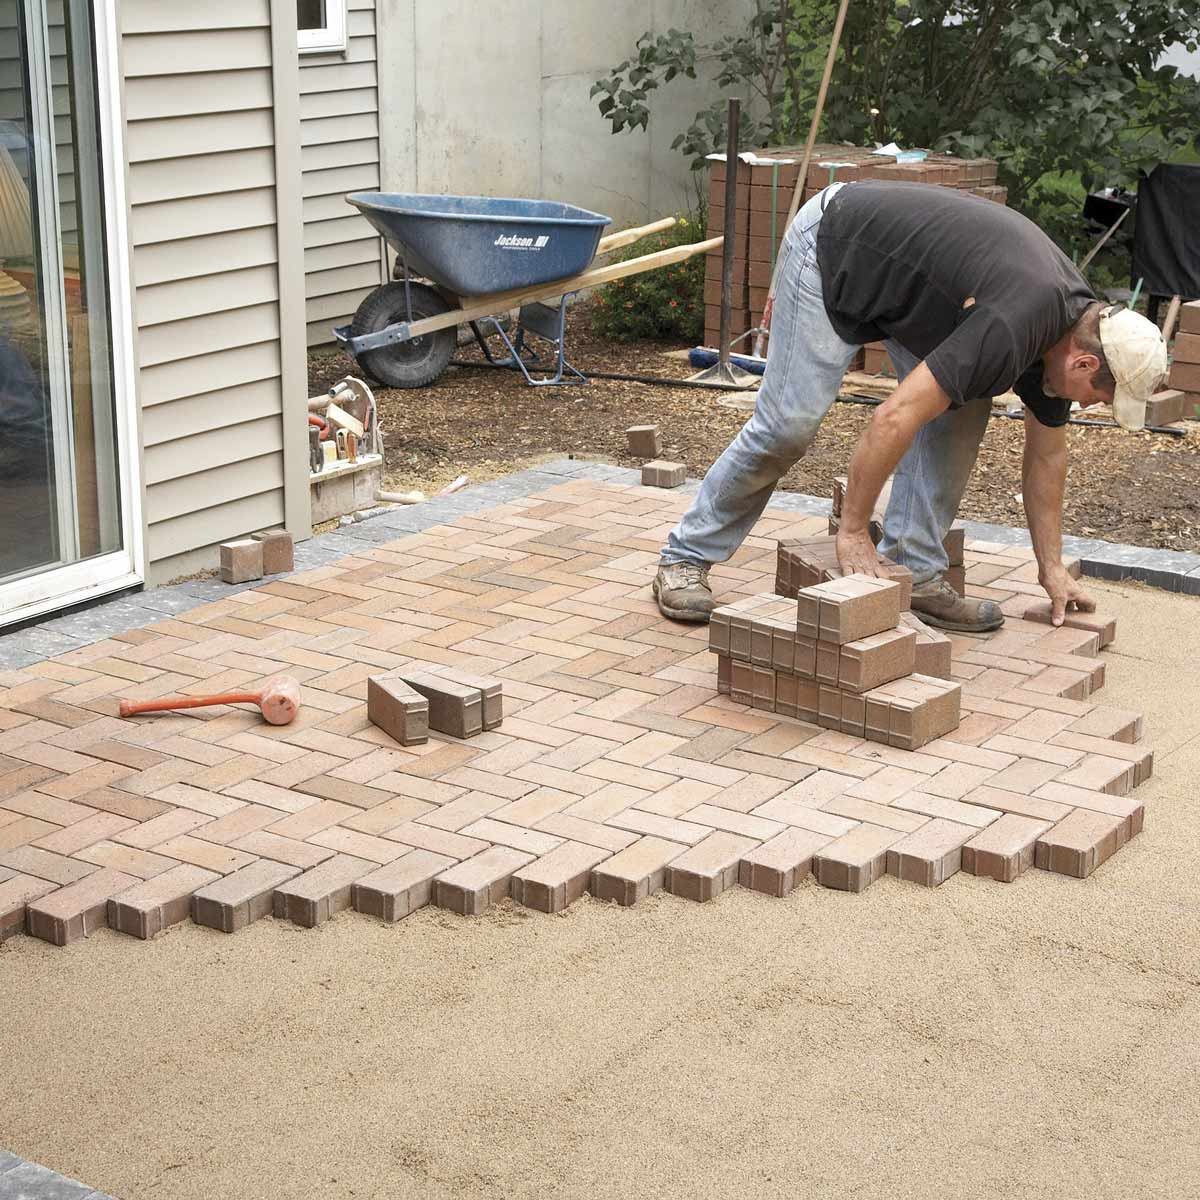 Pavers-Nacodoches TX Professional Landscapers & Outdoor Living Designs-We offer Landscape Design, Outdoor Patios & Pergolas, Outdoor Living Spaces, Stonescapes, Residential & Commercial Landscaping, Irrigation Installation & Repairs, Drainage Systems, Landscape Lighting, Outdoor Living Spaces, Tree Service, Lawn Service, and more.